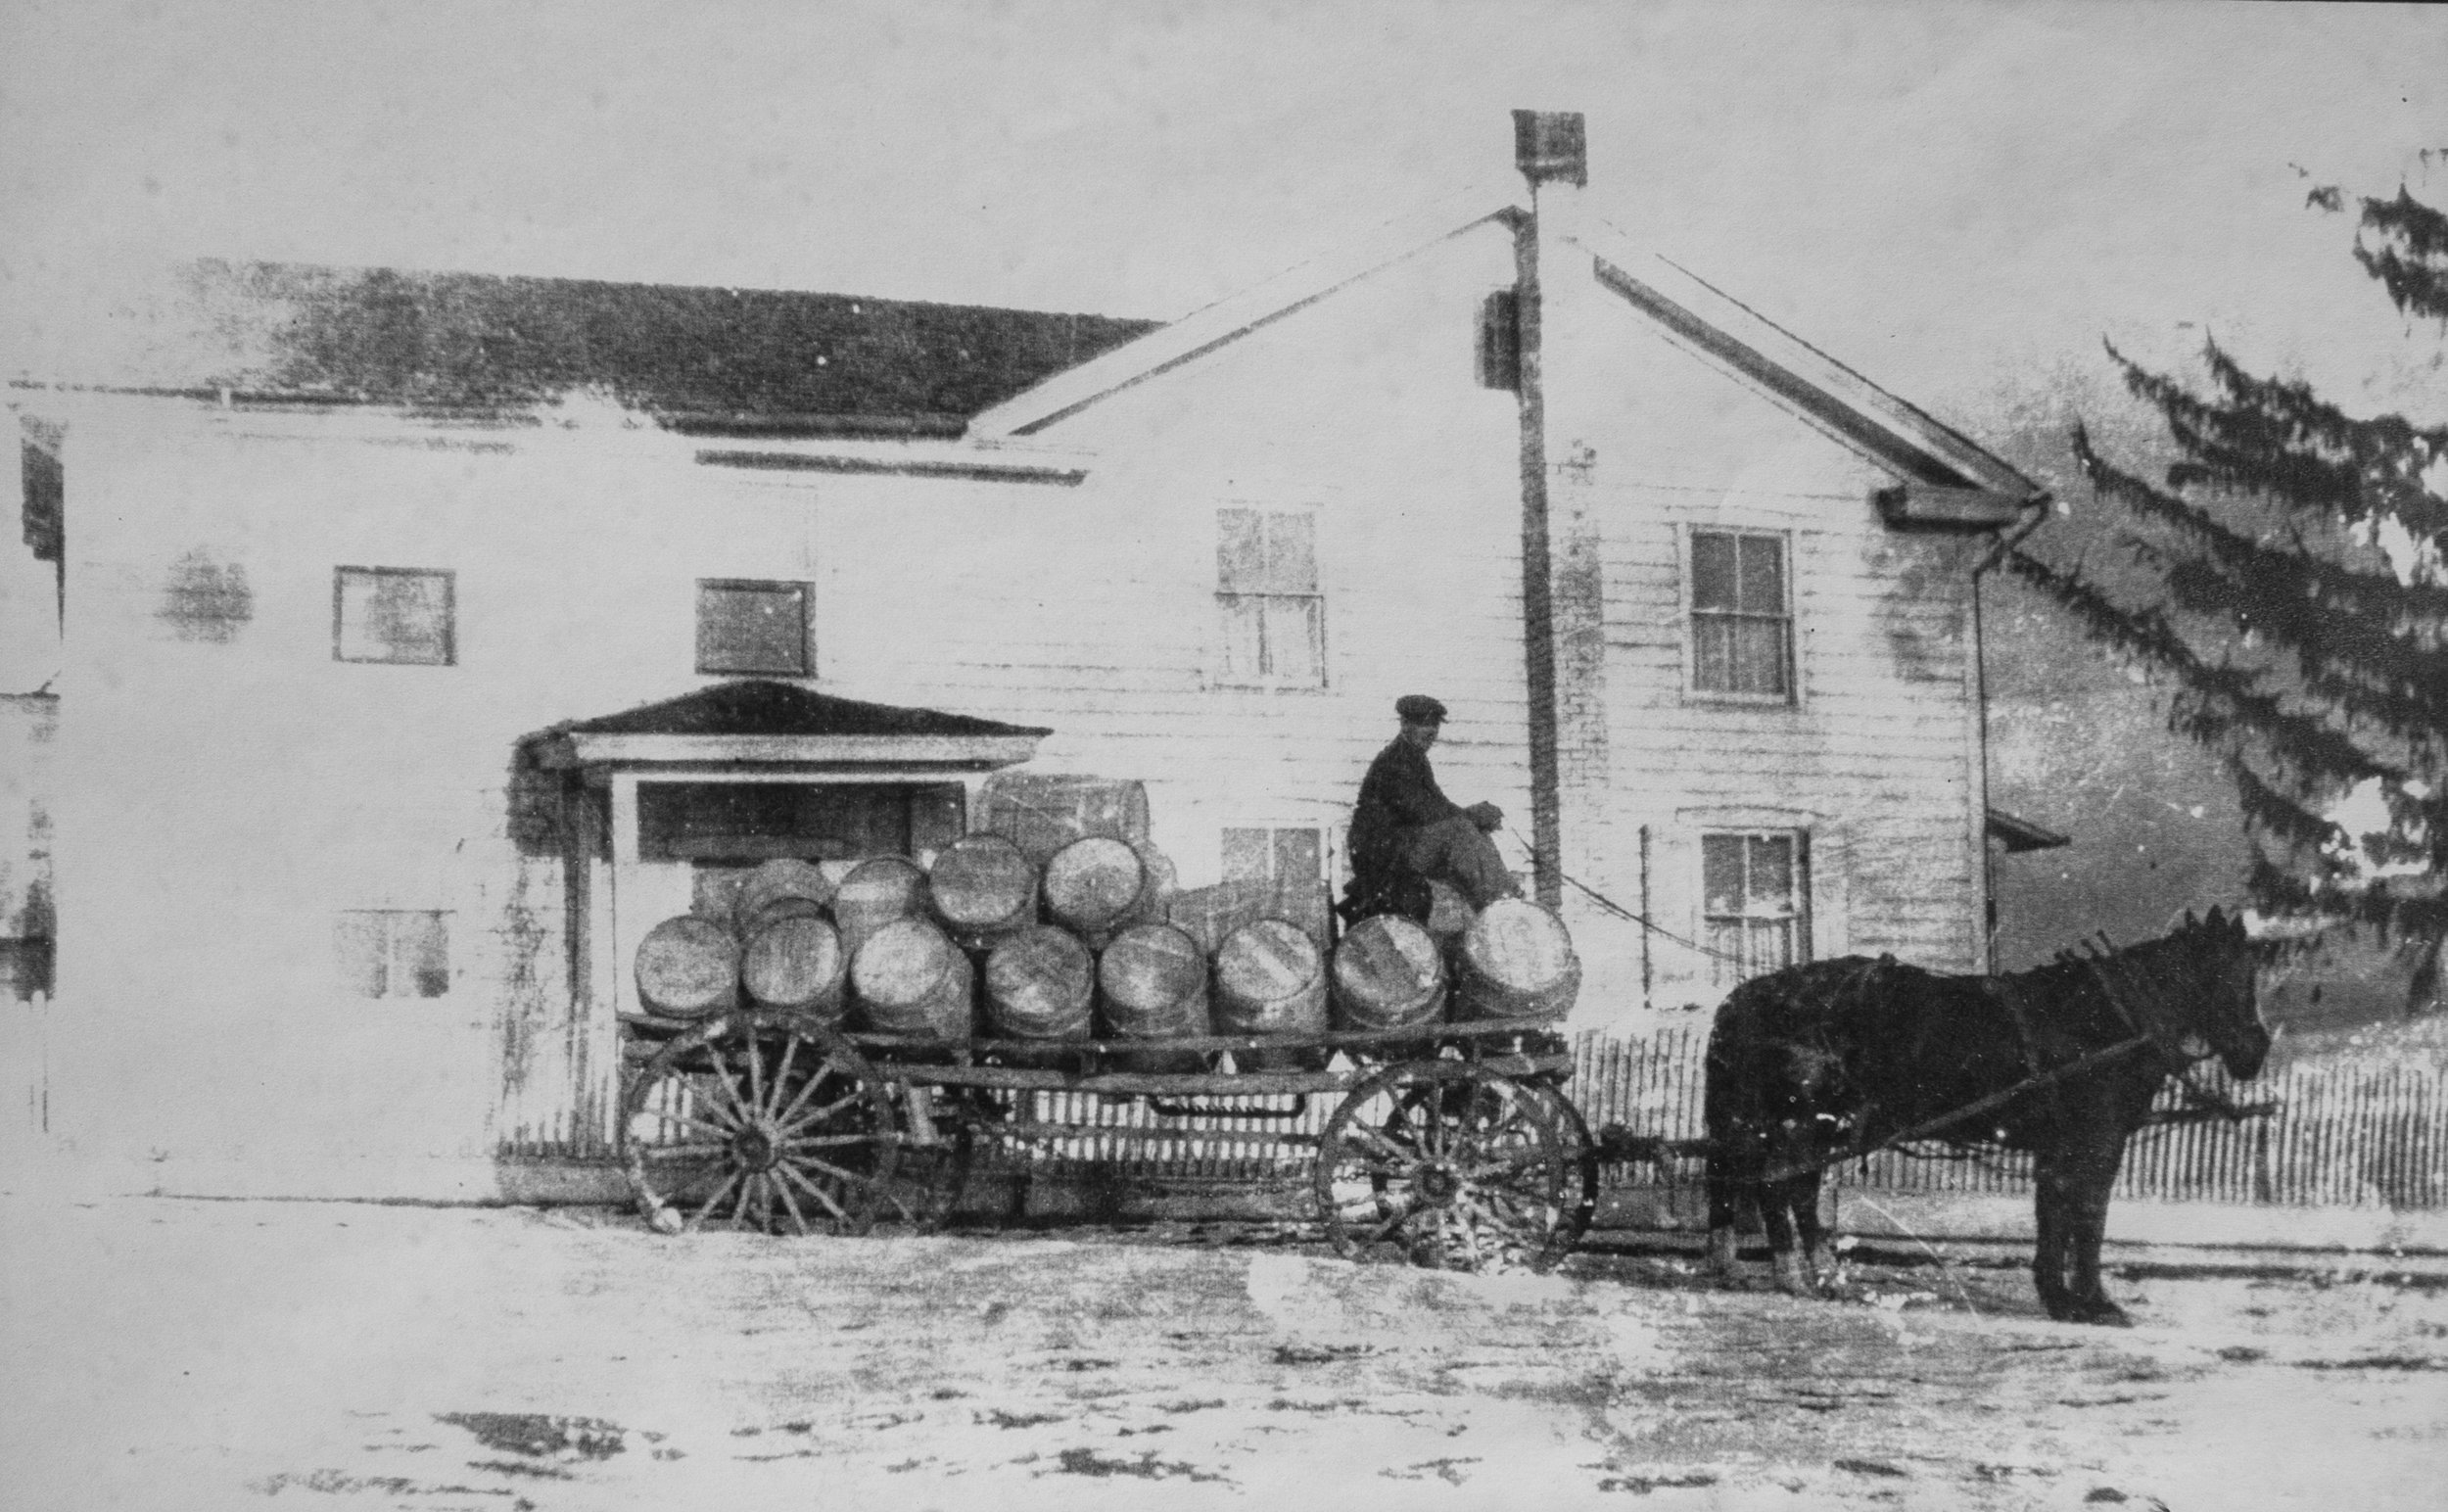 D.H. taking barrels of apples to the railroad.